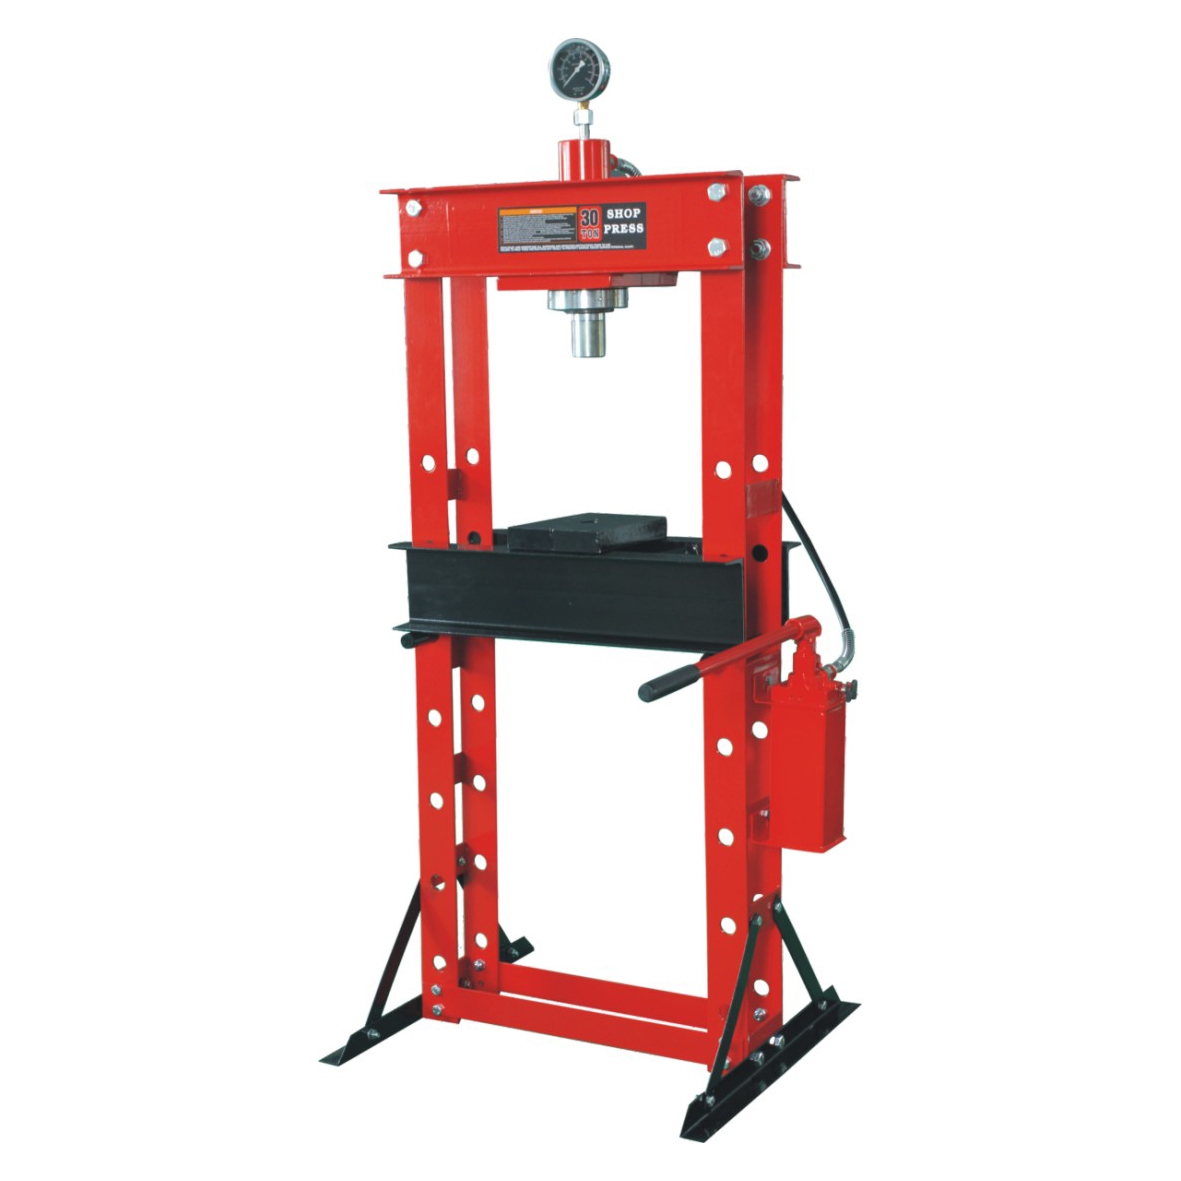 0901D 30T SHOP PRESS WITH GAUGE Featured Image